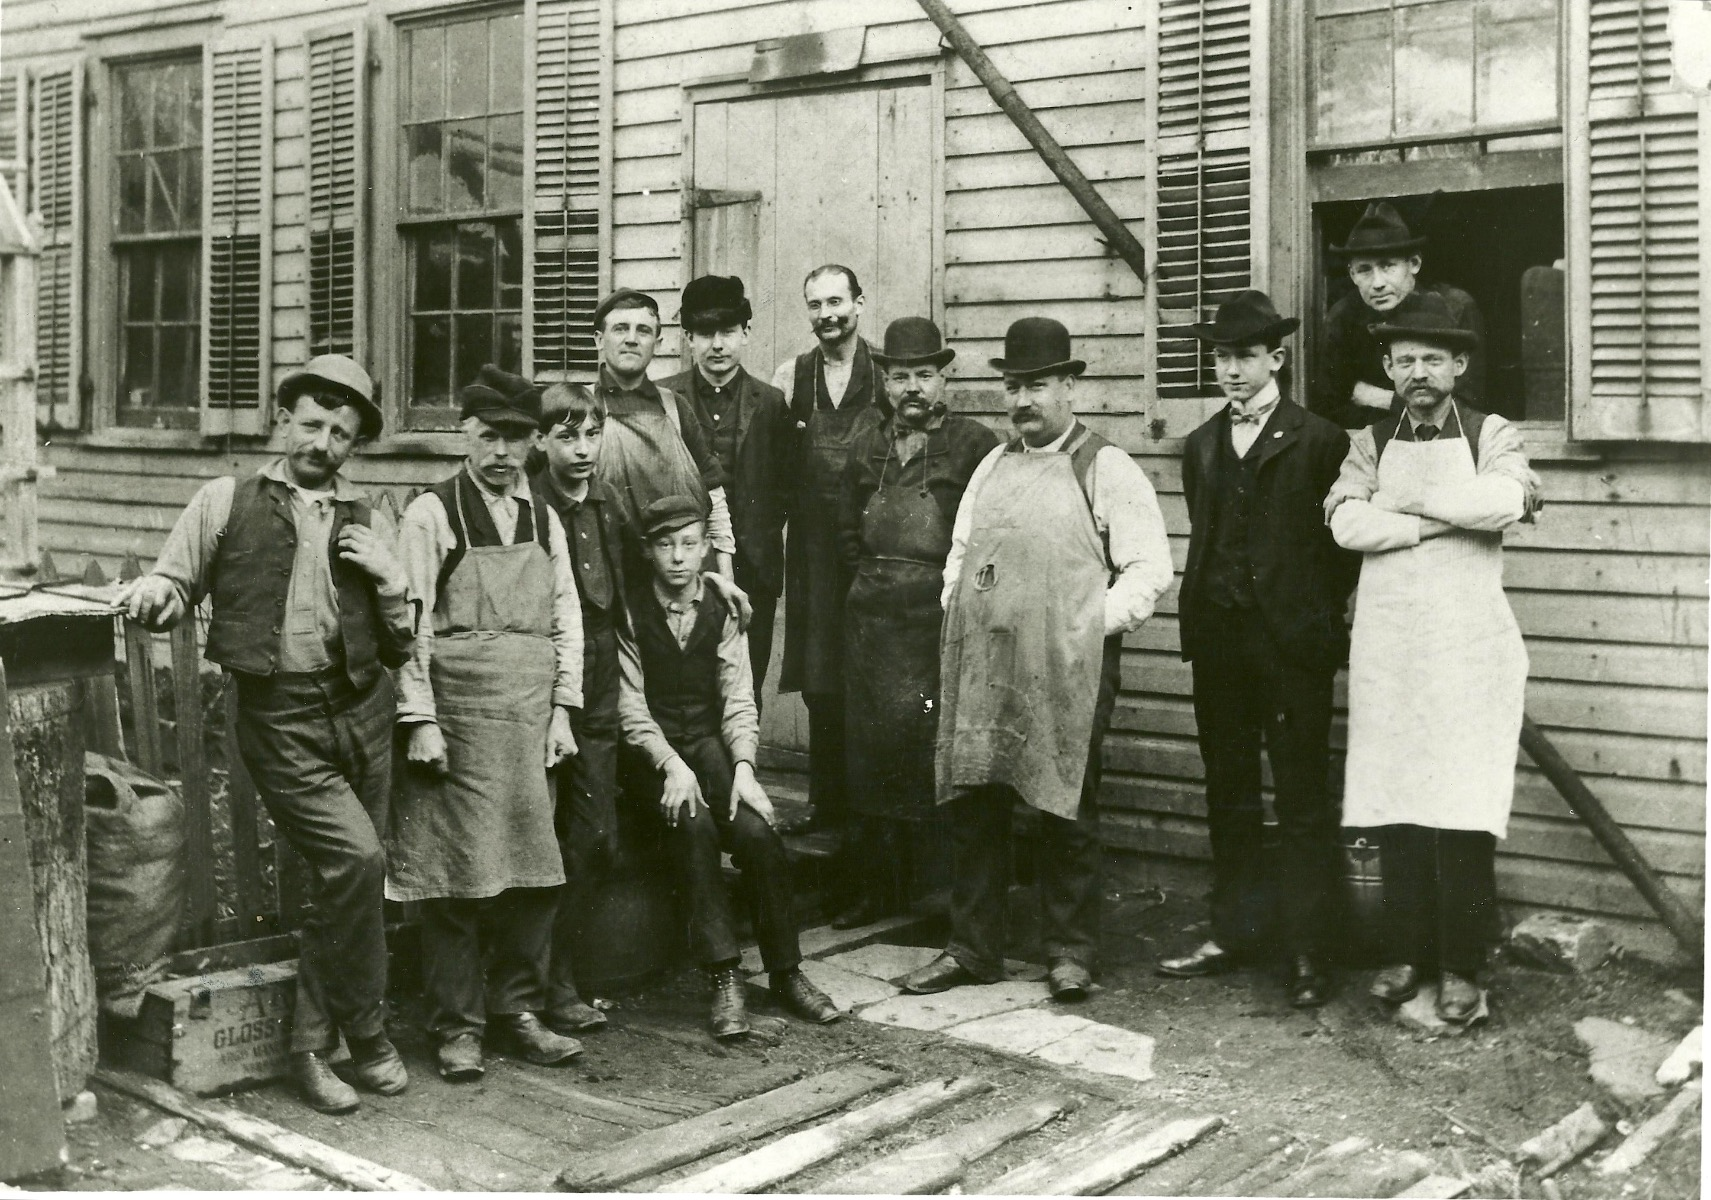 Braun Brush Company employees circa 1911 at the company's Brooklyn factory. Standing, third from the right is founder Emanual Braun;  second from right in the black suit is Albert Cheney, Lance's grandfather.